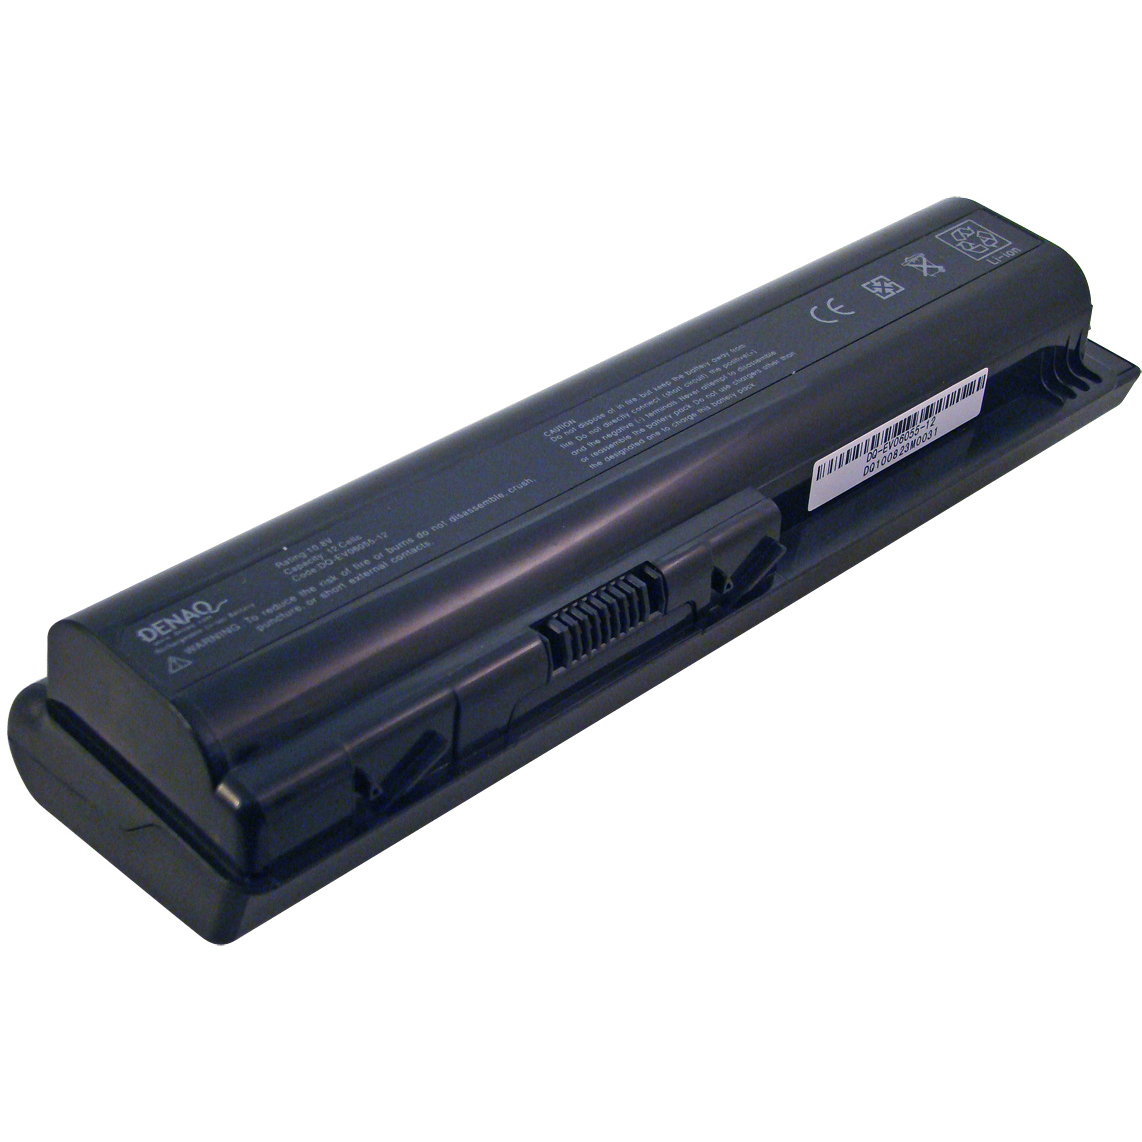 DENAQ DQ-EV06055-12 12-Cell Lithium-Ion Battery for Select HP, HP Pavilion and Presario Laptops